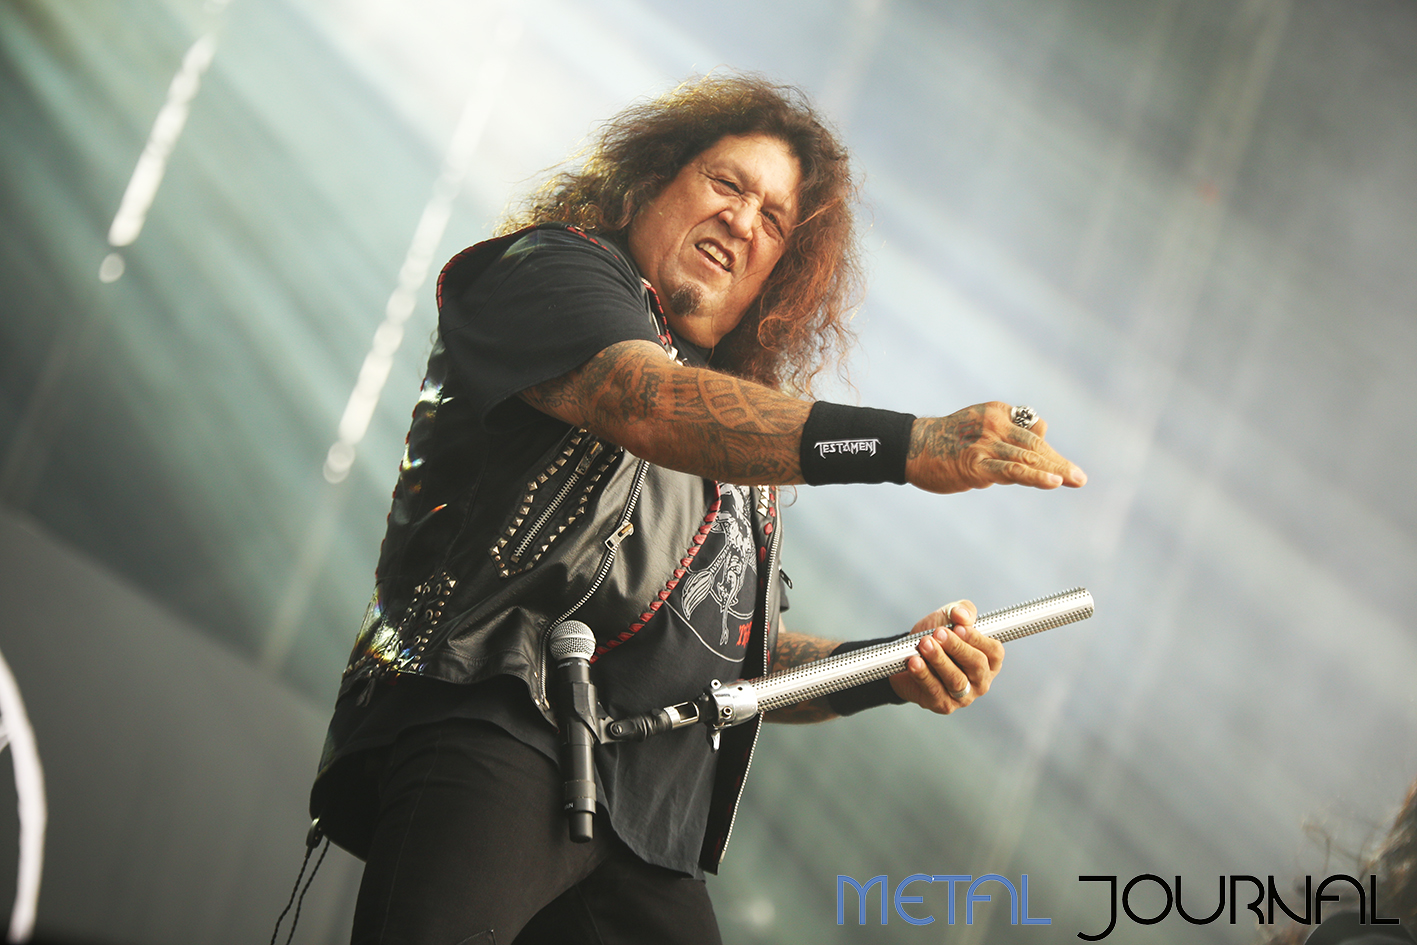 testament - metal journal rock fest barcelona 2019 pic 2